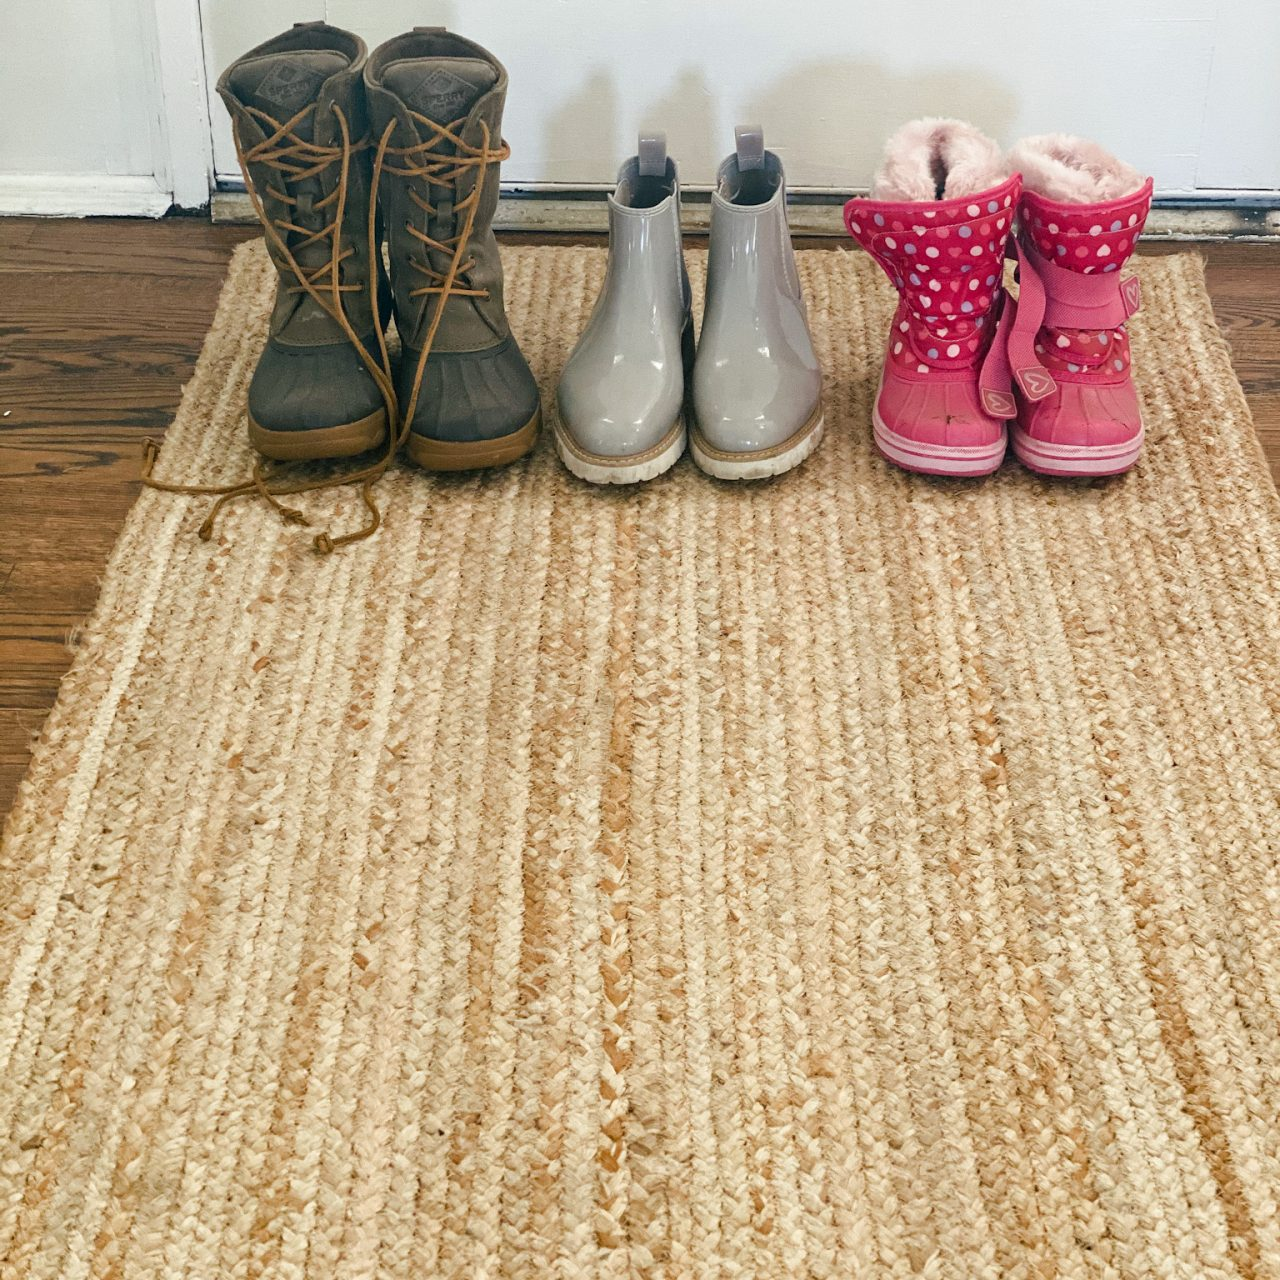 5 Ways to Keep Floors Clean in the Winter